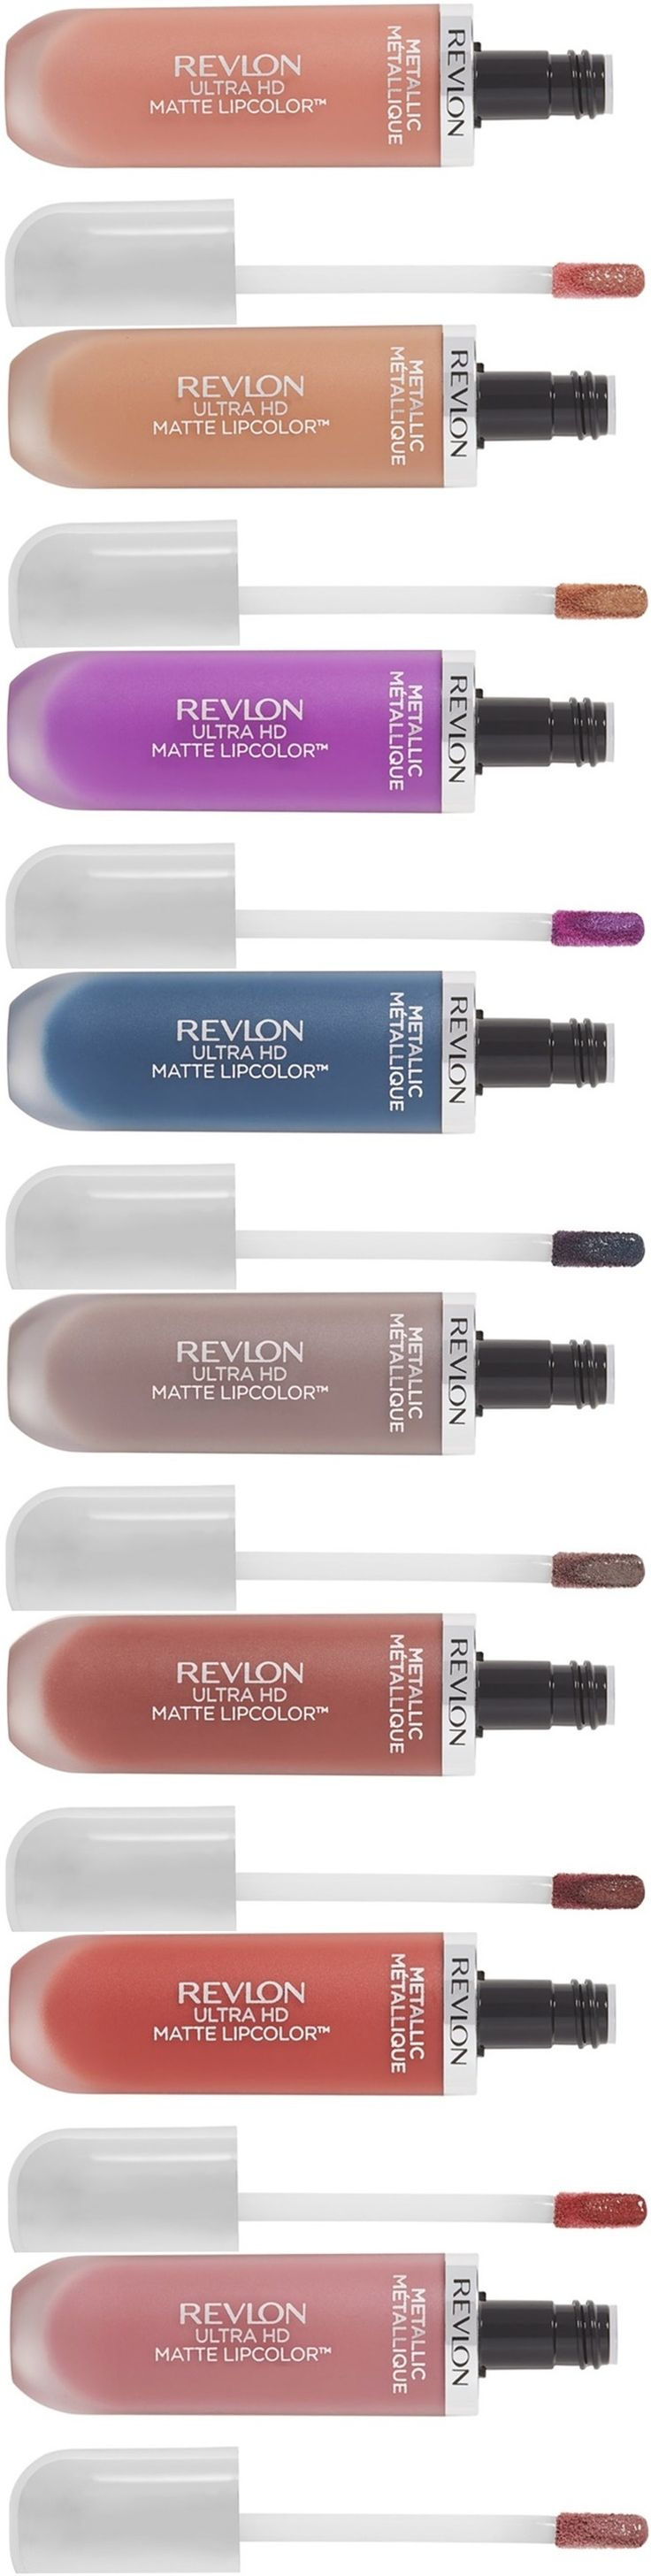 Revlon Ultra HD Matte Metallic Lipcolor for Summer 2017